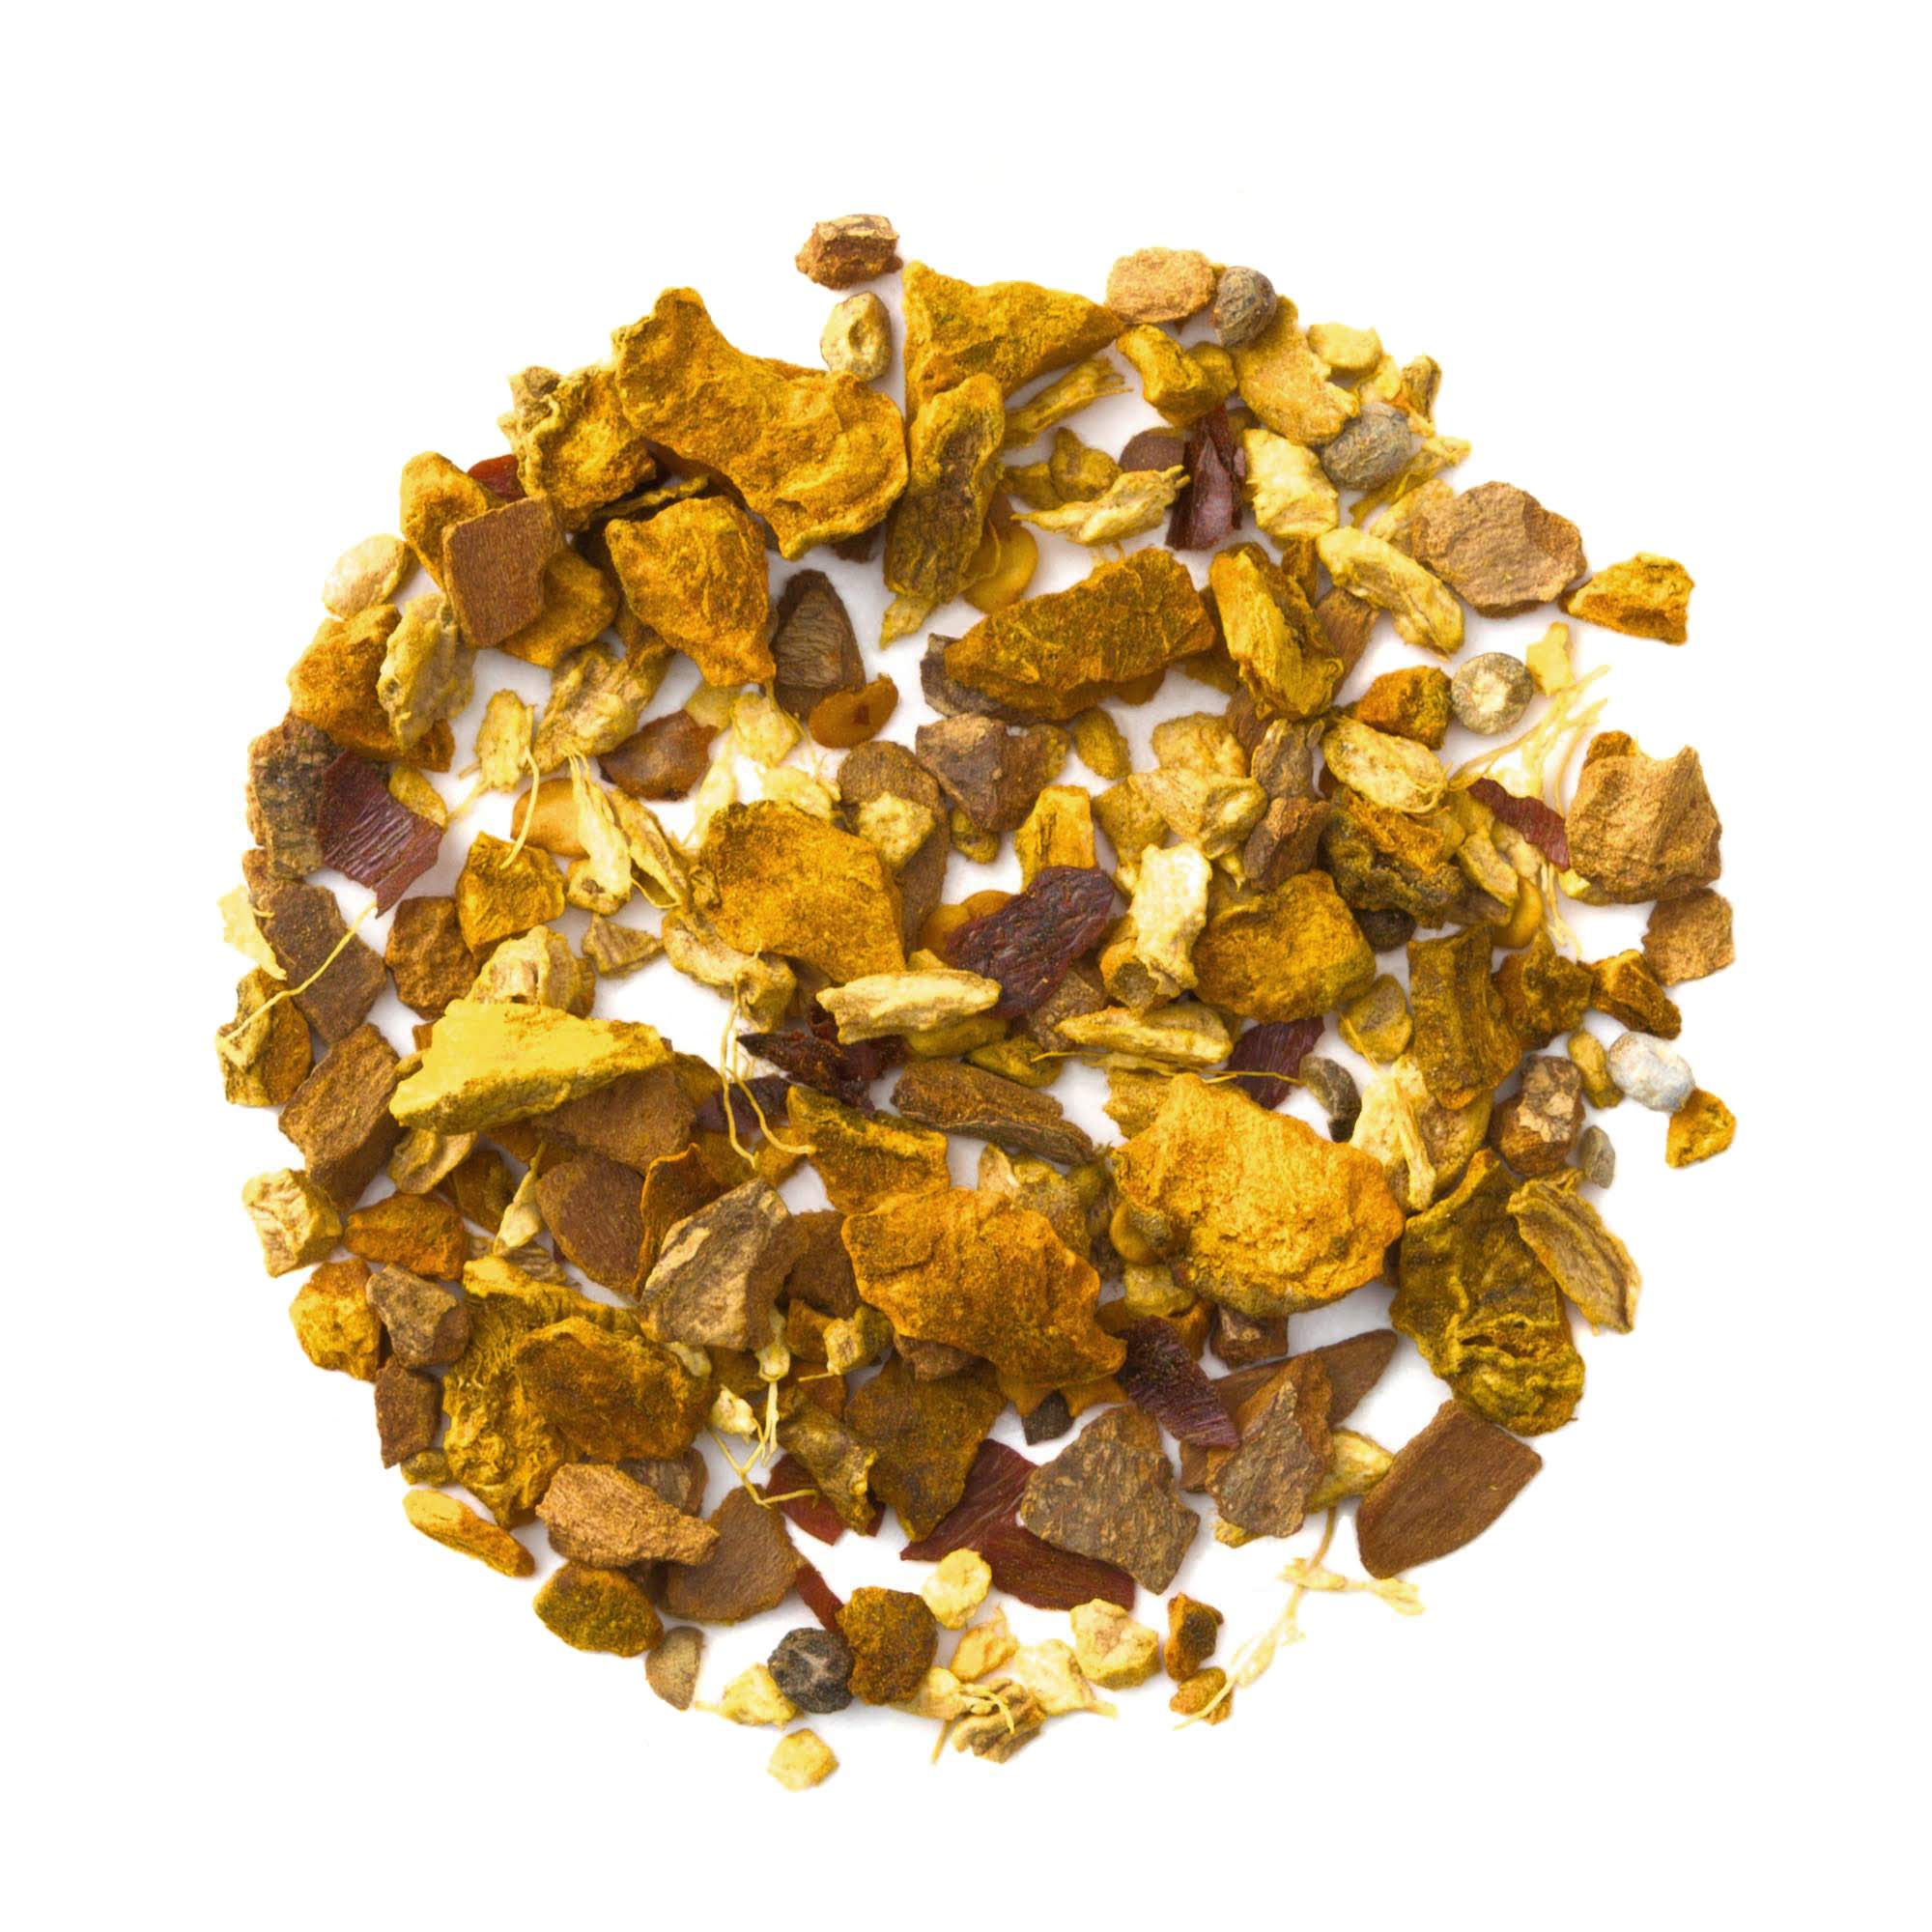 Turmeric Tea - Turmeric Teas & Tisanes - Loose Leaf Turmeric Tea - Organic Turmeric Tea - Bulk Turmeric Teas - Heavenly Tea Leaves